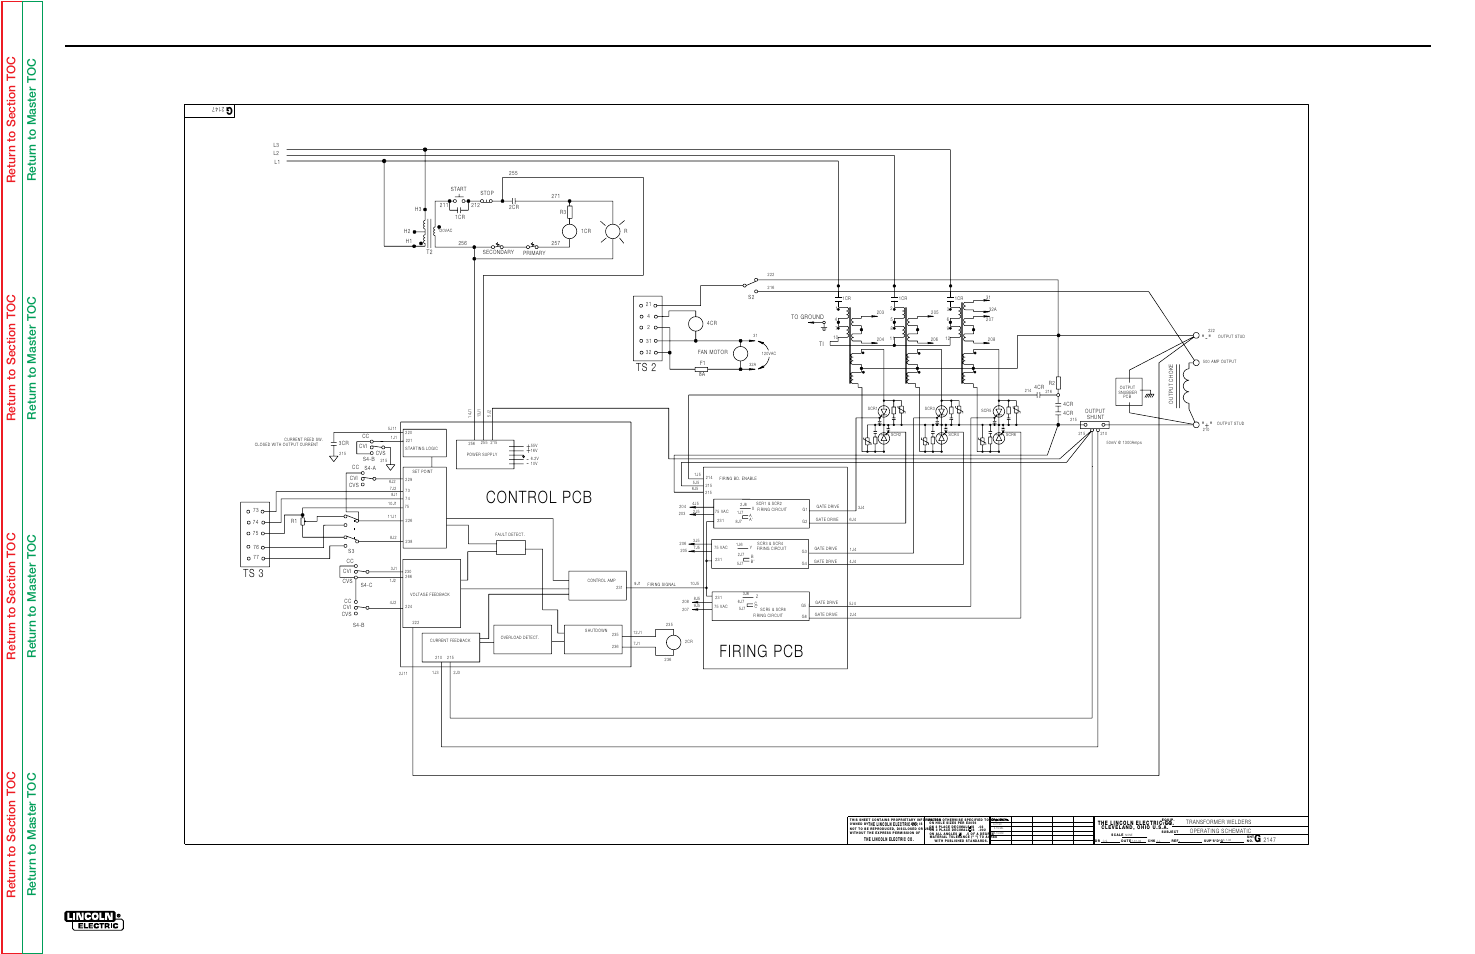 Electrical Diagrams  Operating Schematic  Idealarc Dc1000